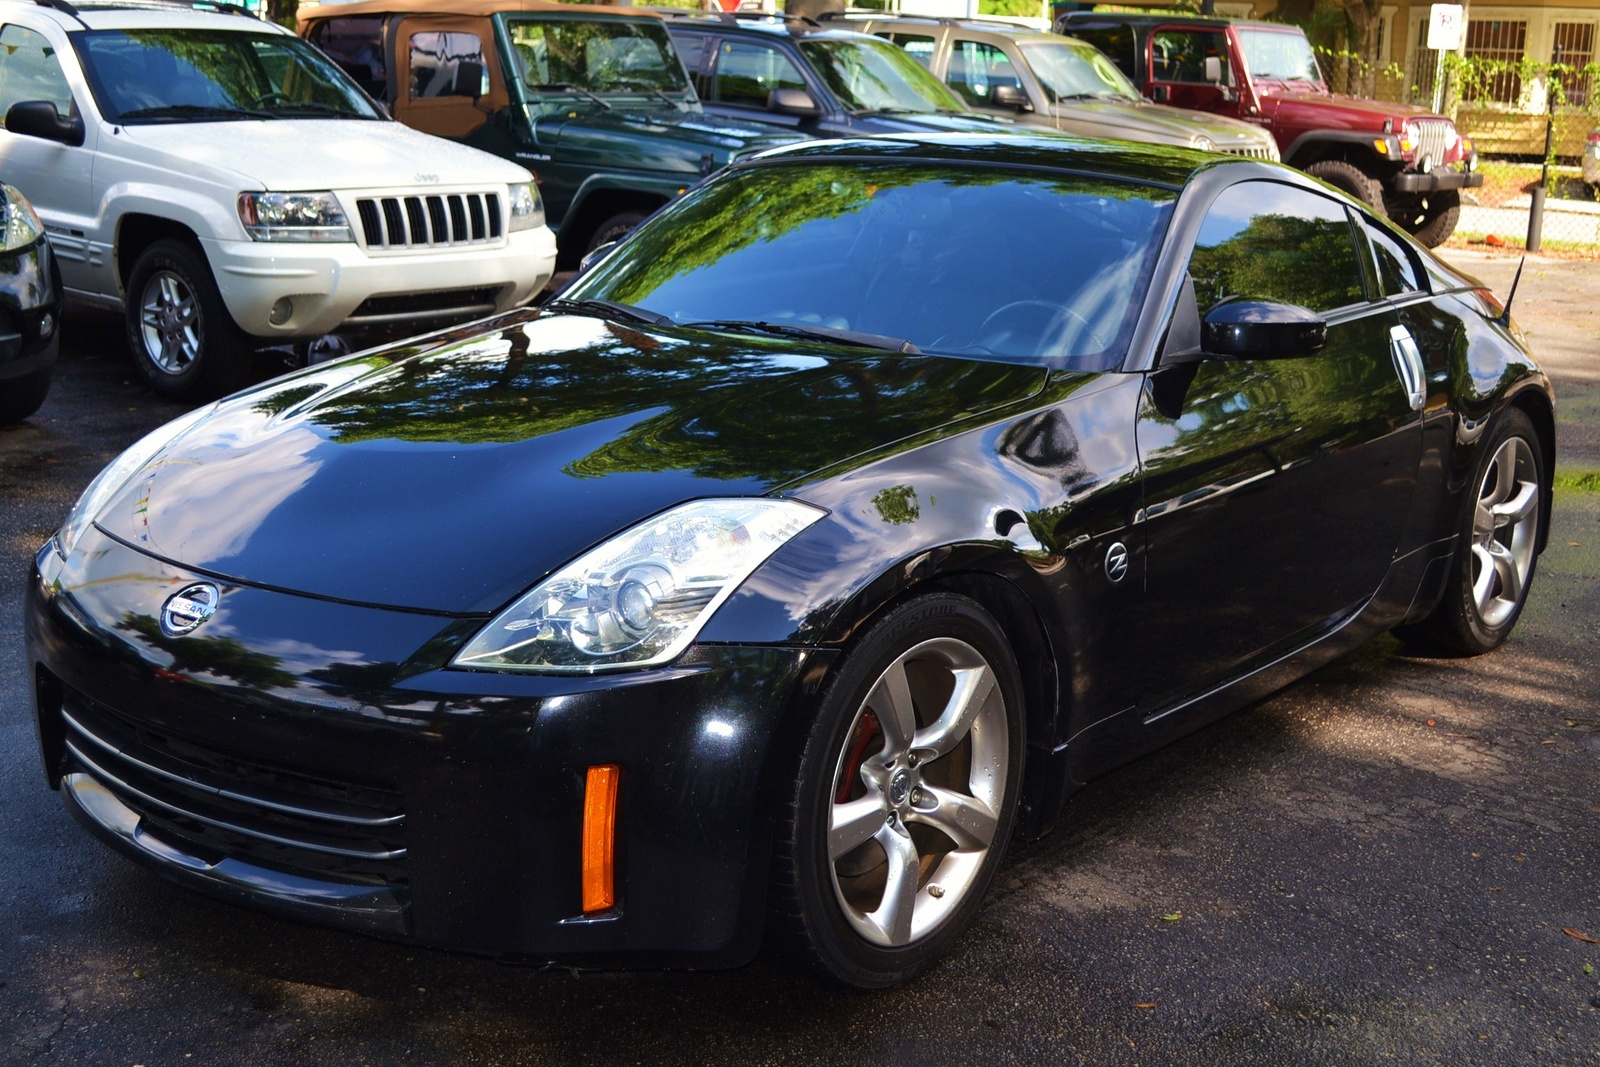 Sunny King Ford >> 2007 Nissan 350Z - Pictures - CarGurus